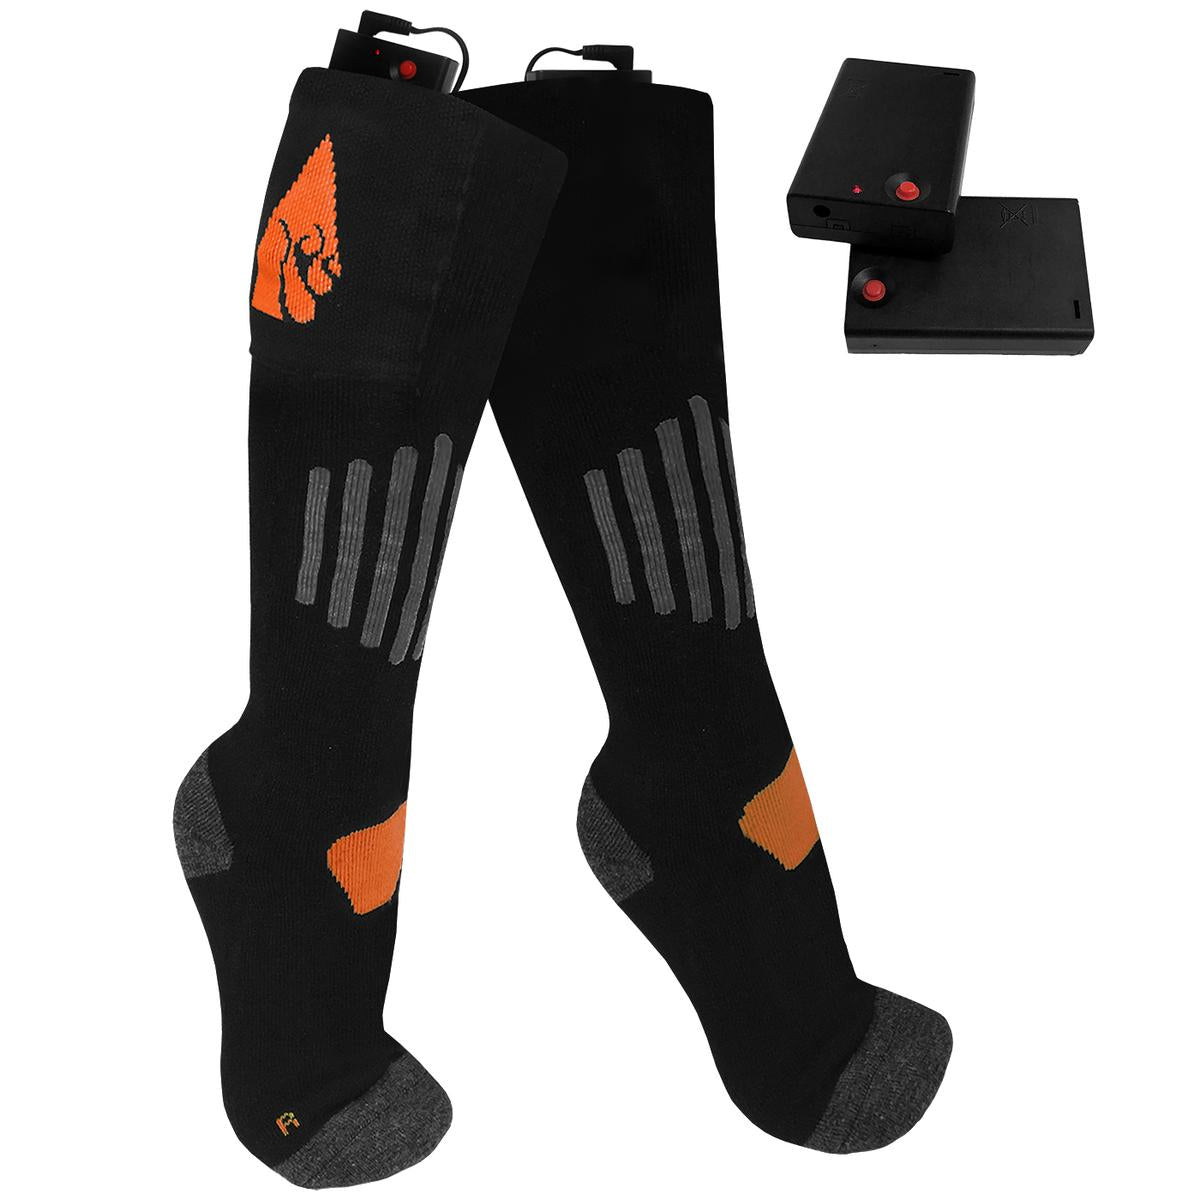 ActionHeat Wool AA Battery Heated Socks - Replacement Socks Only - Info